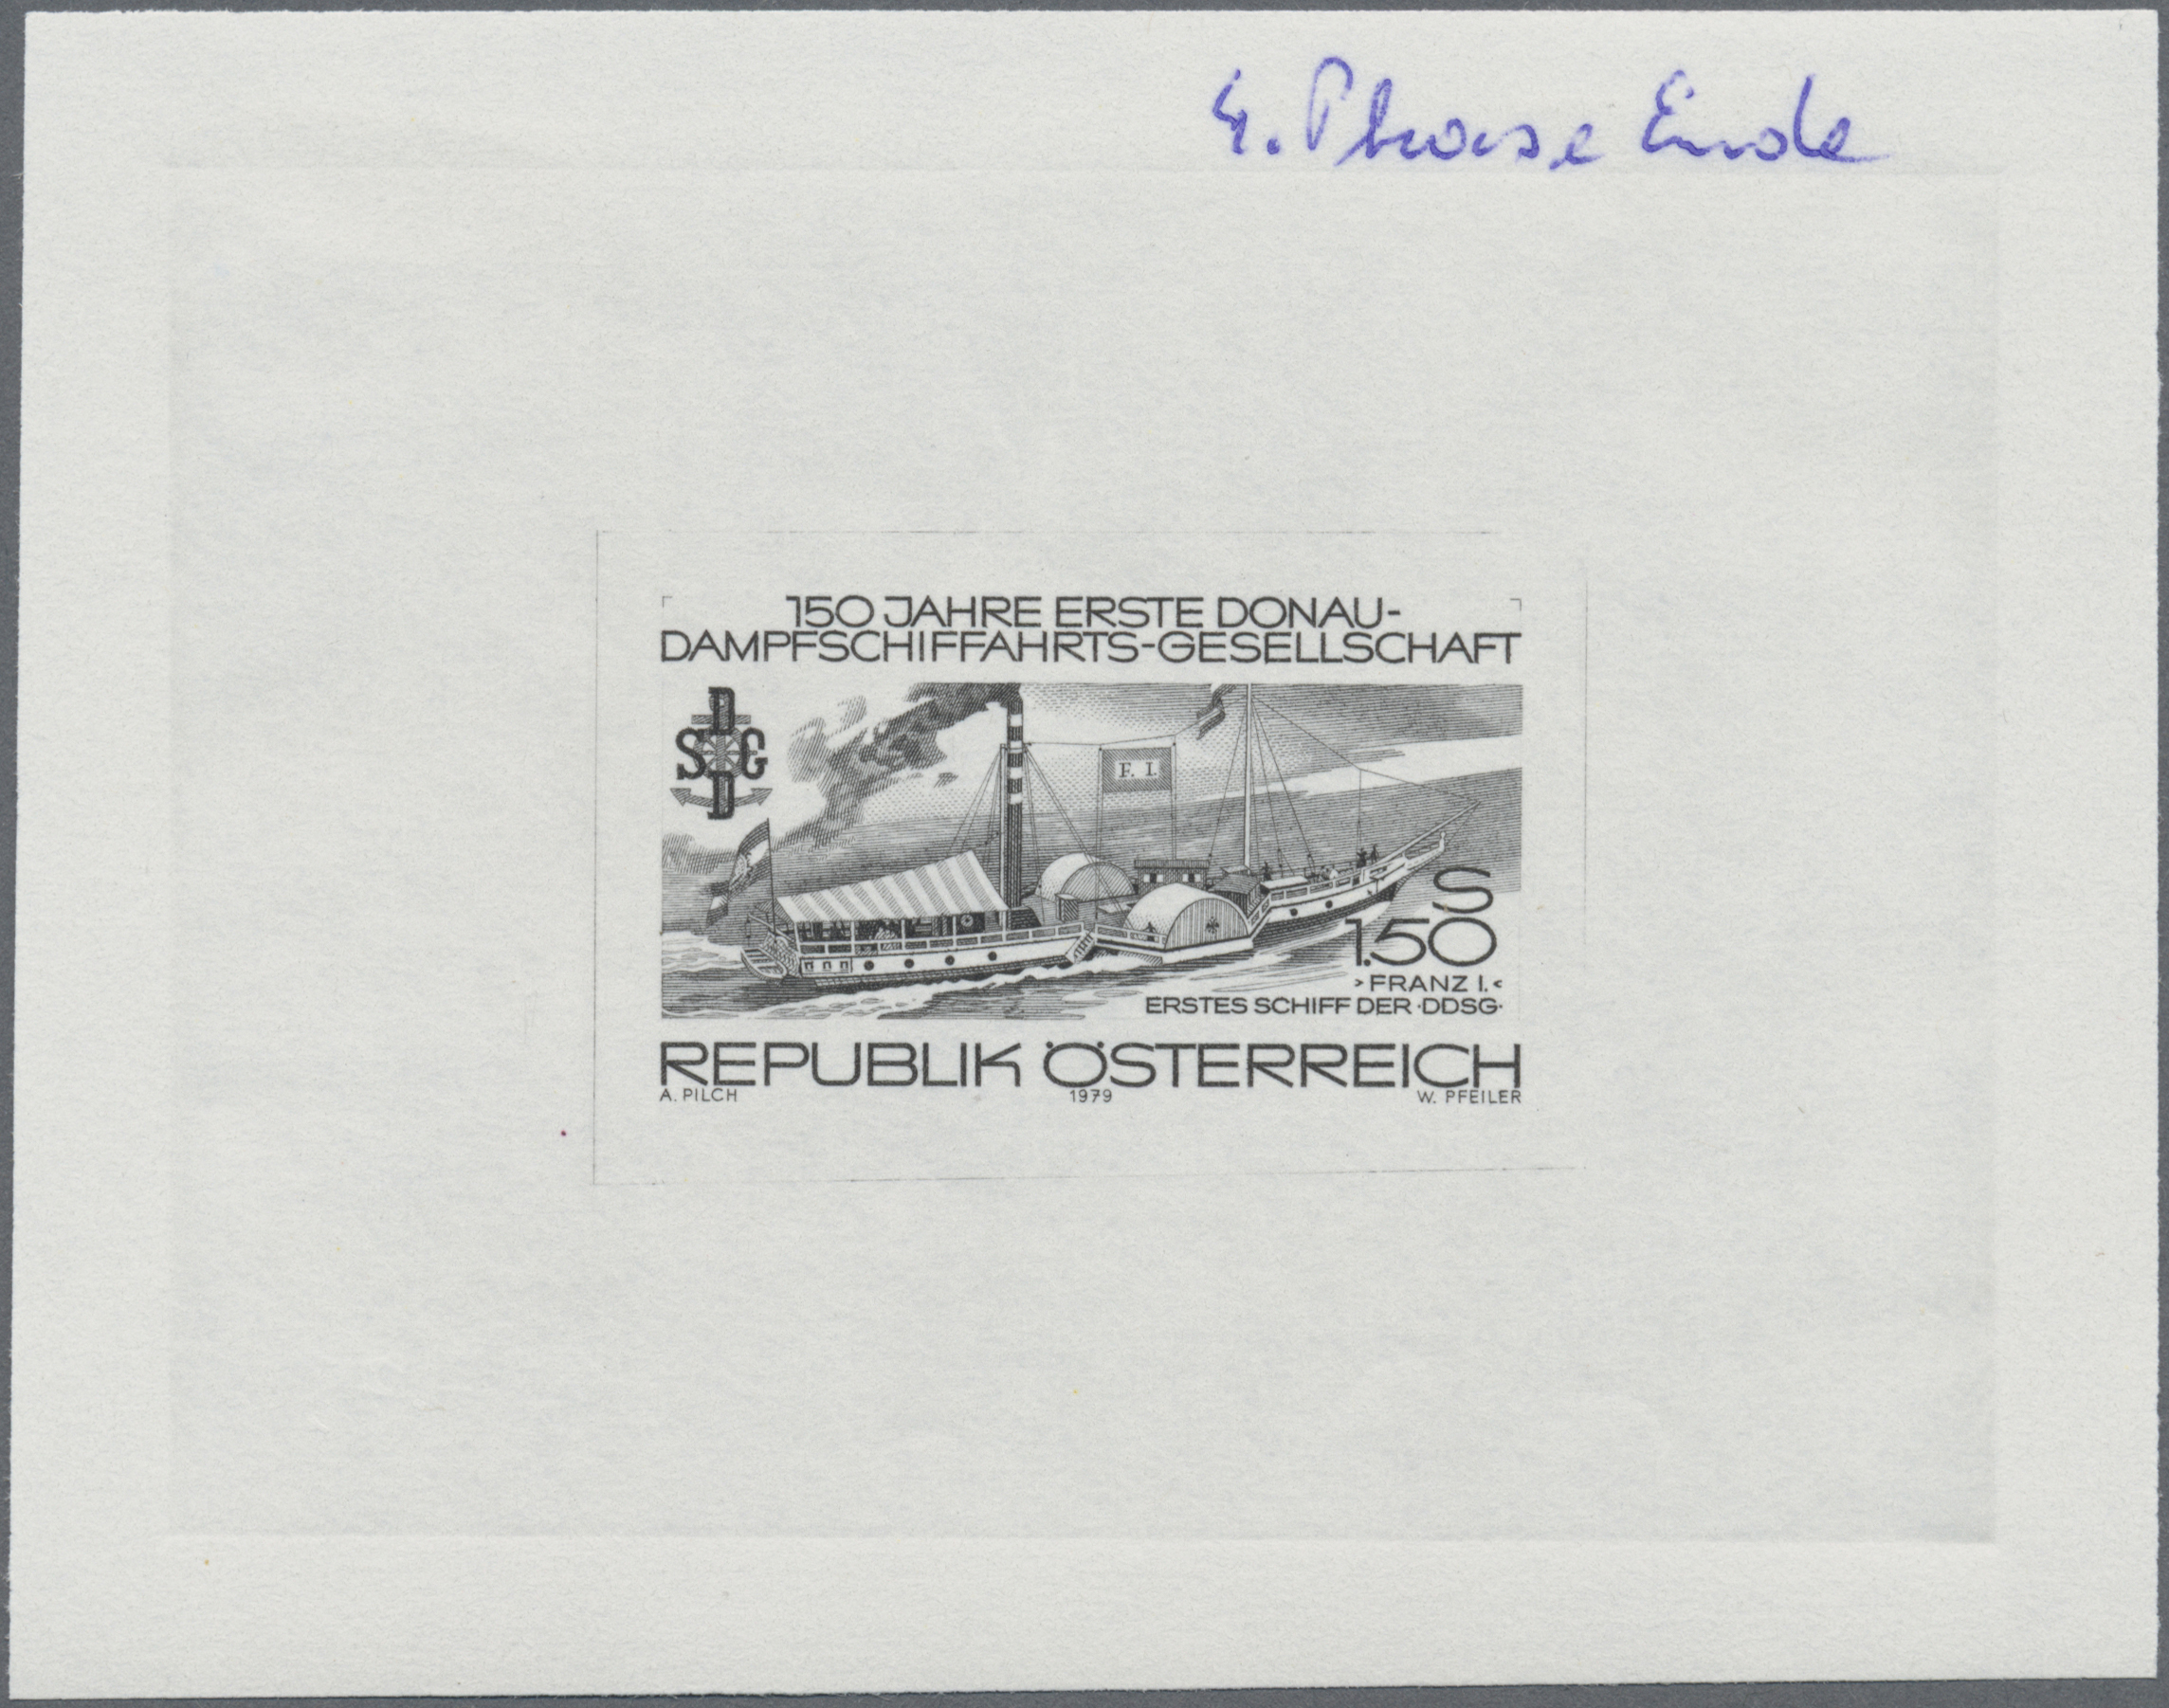 Lot 17970 - österreich  -  Auktionshaus Christoph Gärtner GmbH & Co. KG Single lots Philately Overseas & Europe. Auction #39 Day 4